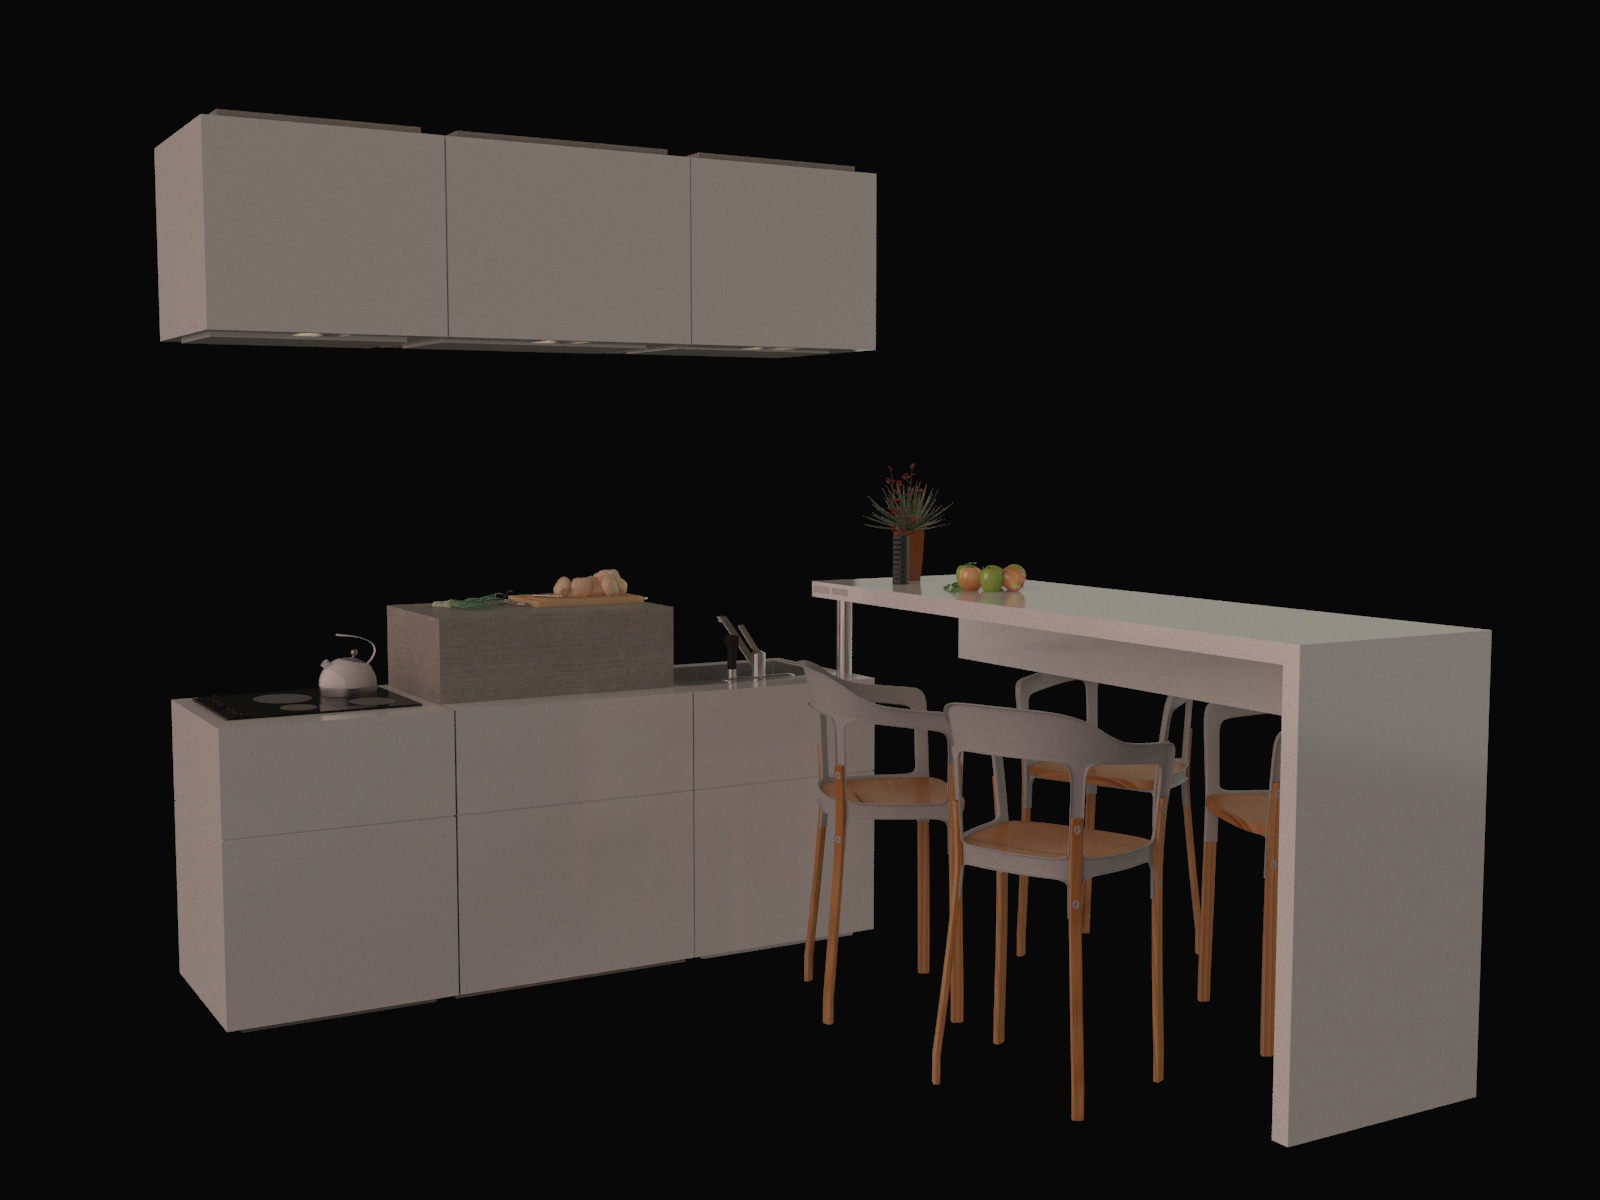 Lautaro Vogel was one of the five winners selected for the FirstBuild Micro-Kitchen Challenge; each design will contribute to the final design that will be manufactured at FirstBuild's microfactory in Louisville, Ky. (Graphic: GE)